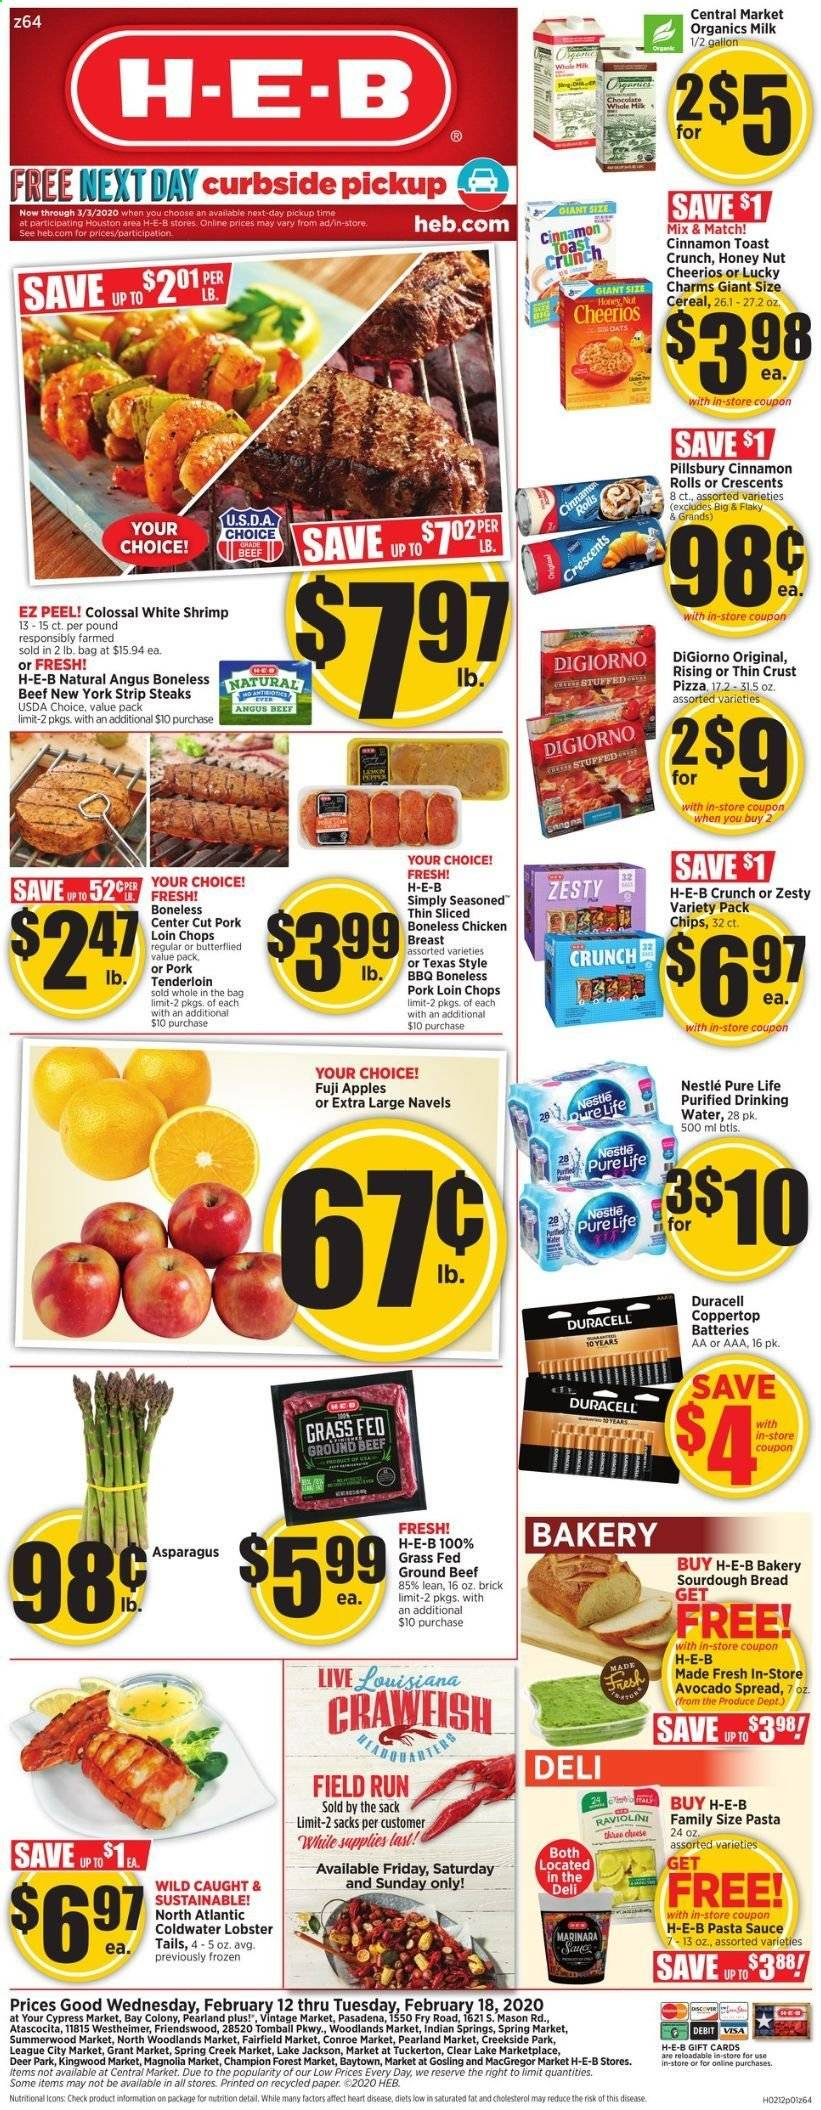 H-E-B Flyer  - 02.12.2020 - 02.18.2020. Page 1.